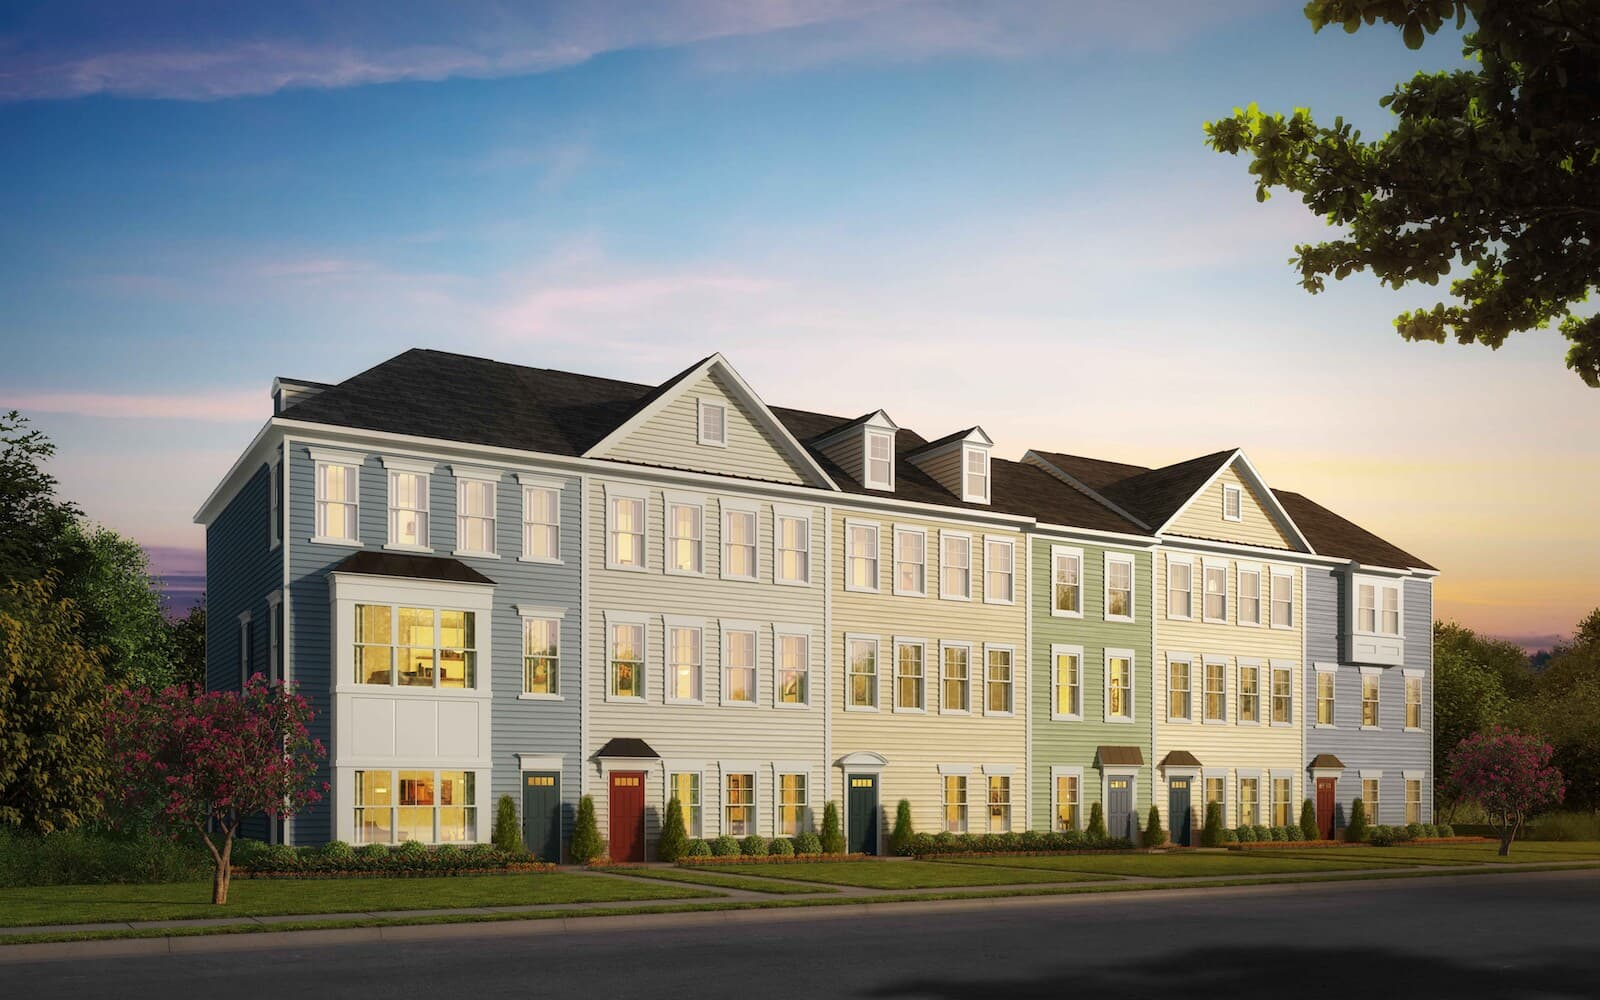 CamdenII-exteriorrendering-townhomes-north-potomac-md-travilah-station-brookfield-residential